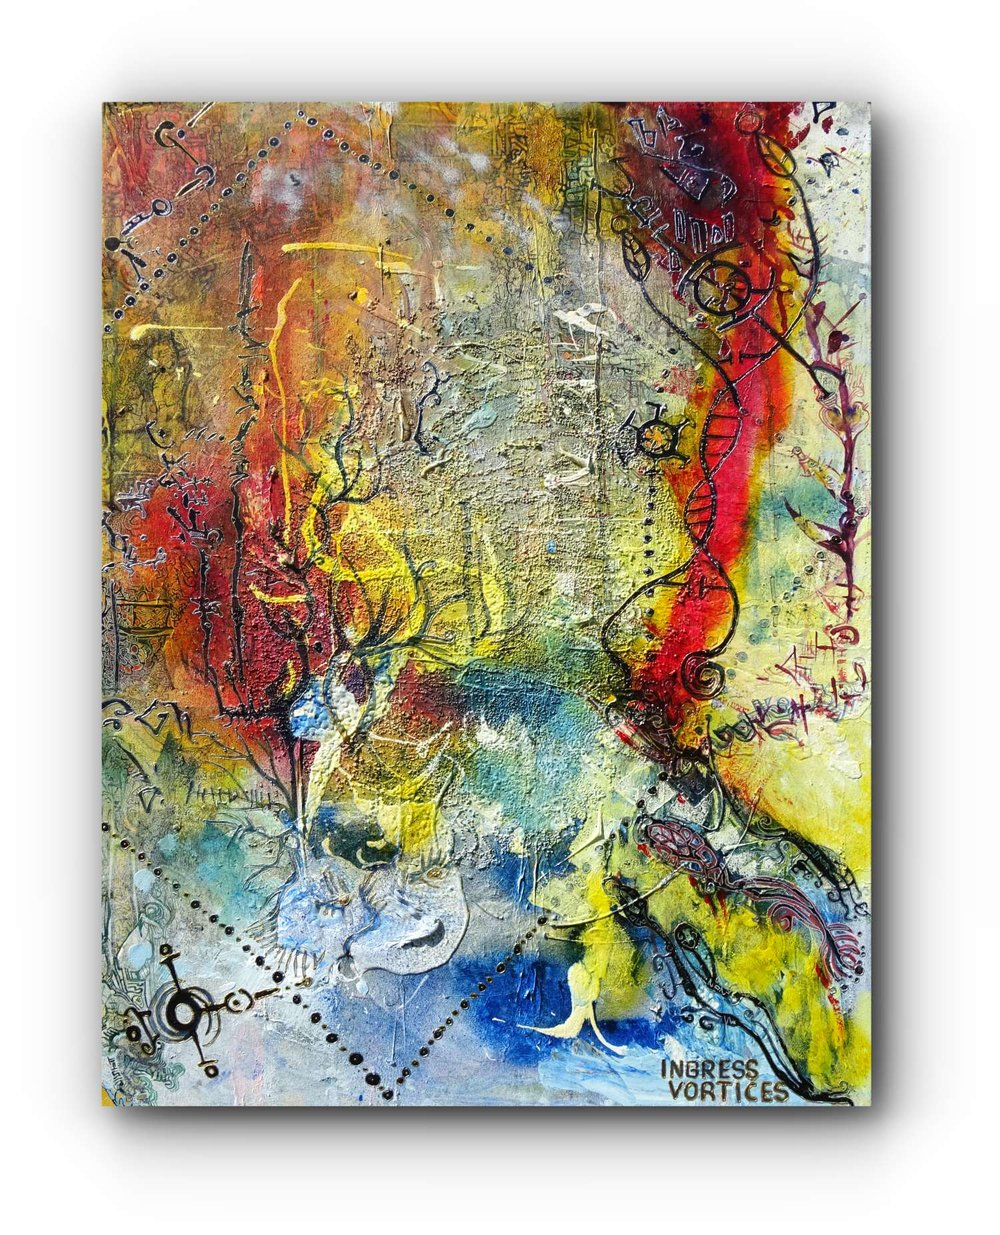 painting-reminiscence-artist-duo-ingress-vortices.jpg